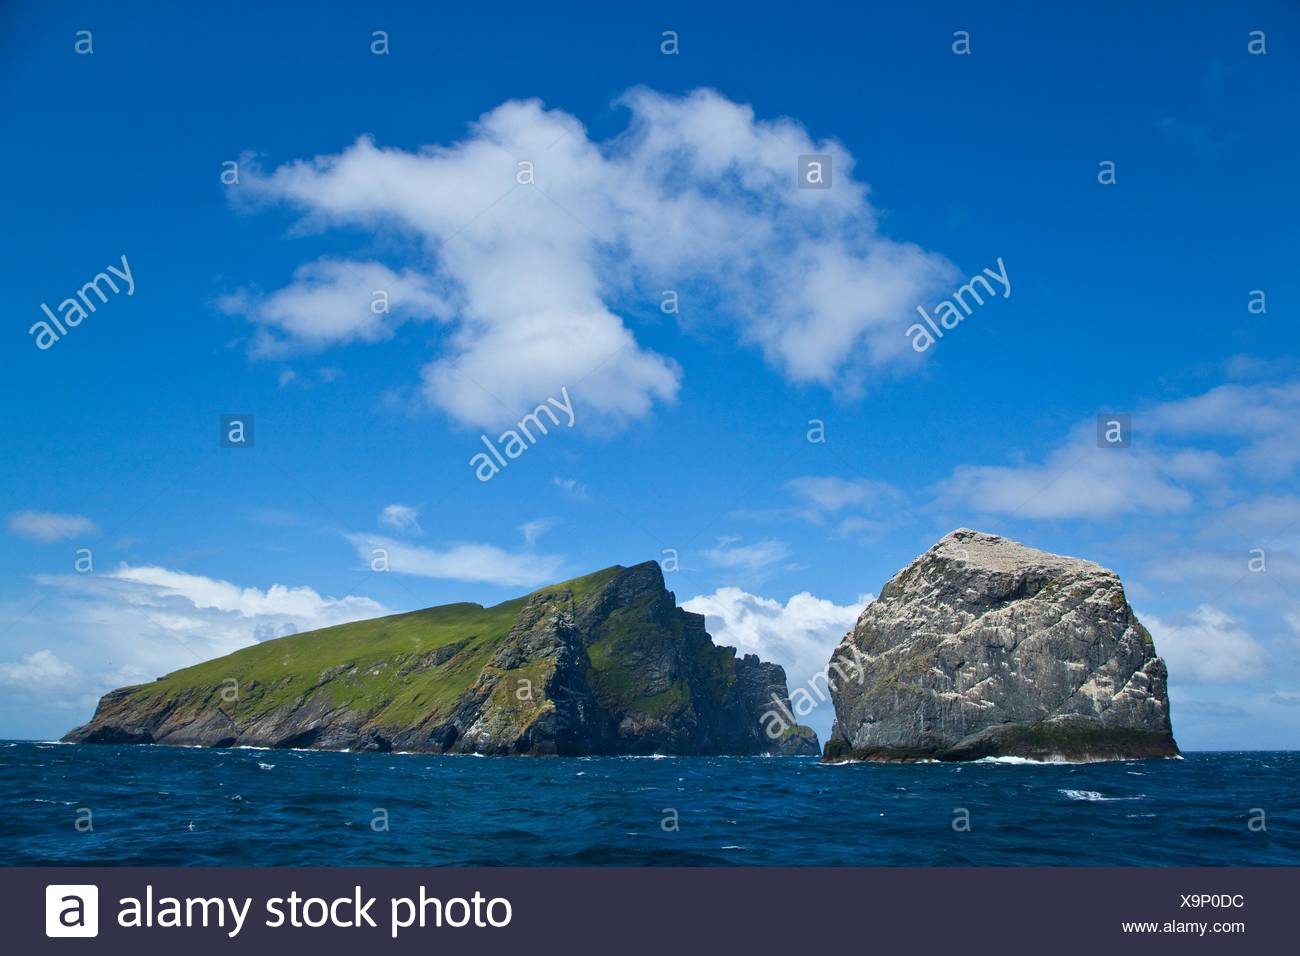 Stac Lee and Boreray Islands. Gannet colony. St. Kilda Archipelago. Outer Hebrides. Scotland, UK. - Stock Image